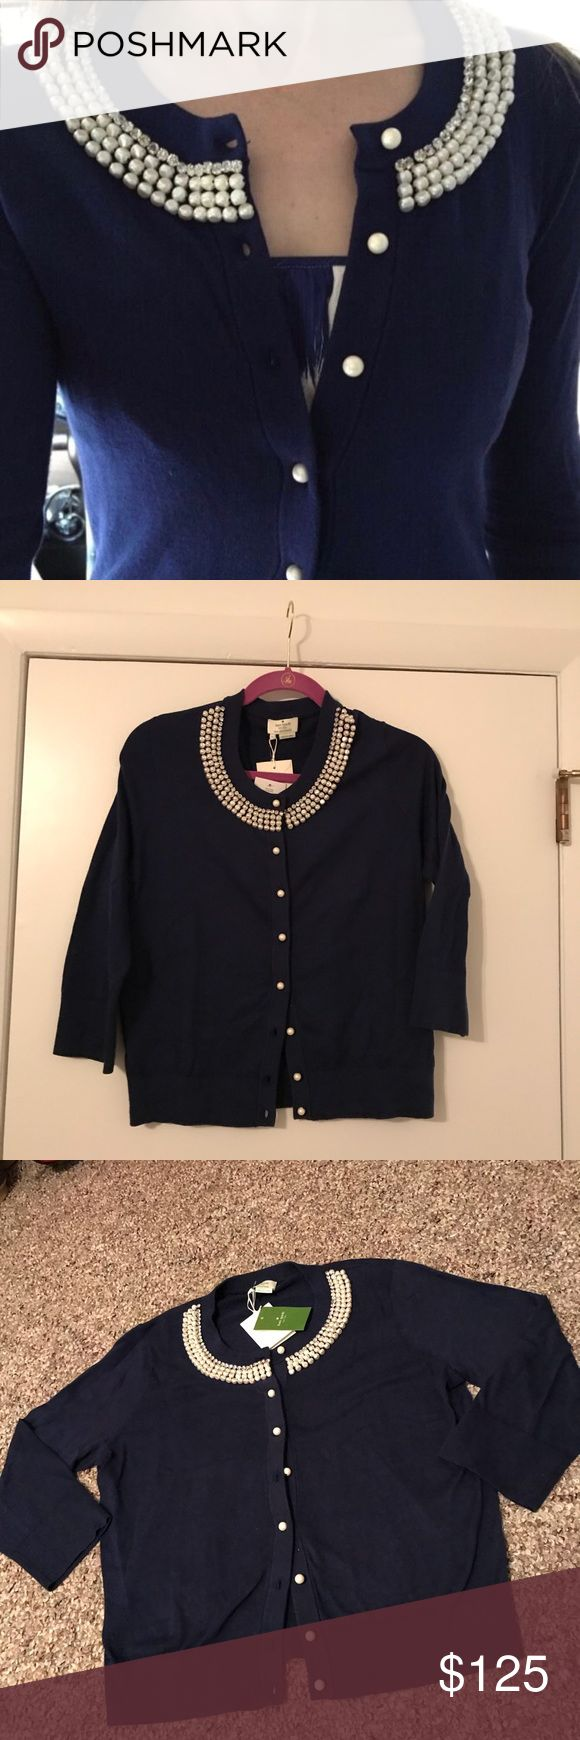 Kate Spade Navy Cardigan Kate Spade Cardigan. Navy blue with pearls on buttons and around collar. Never worn, with original tags. Very comfortable, size large. Sweaters Cardigans